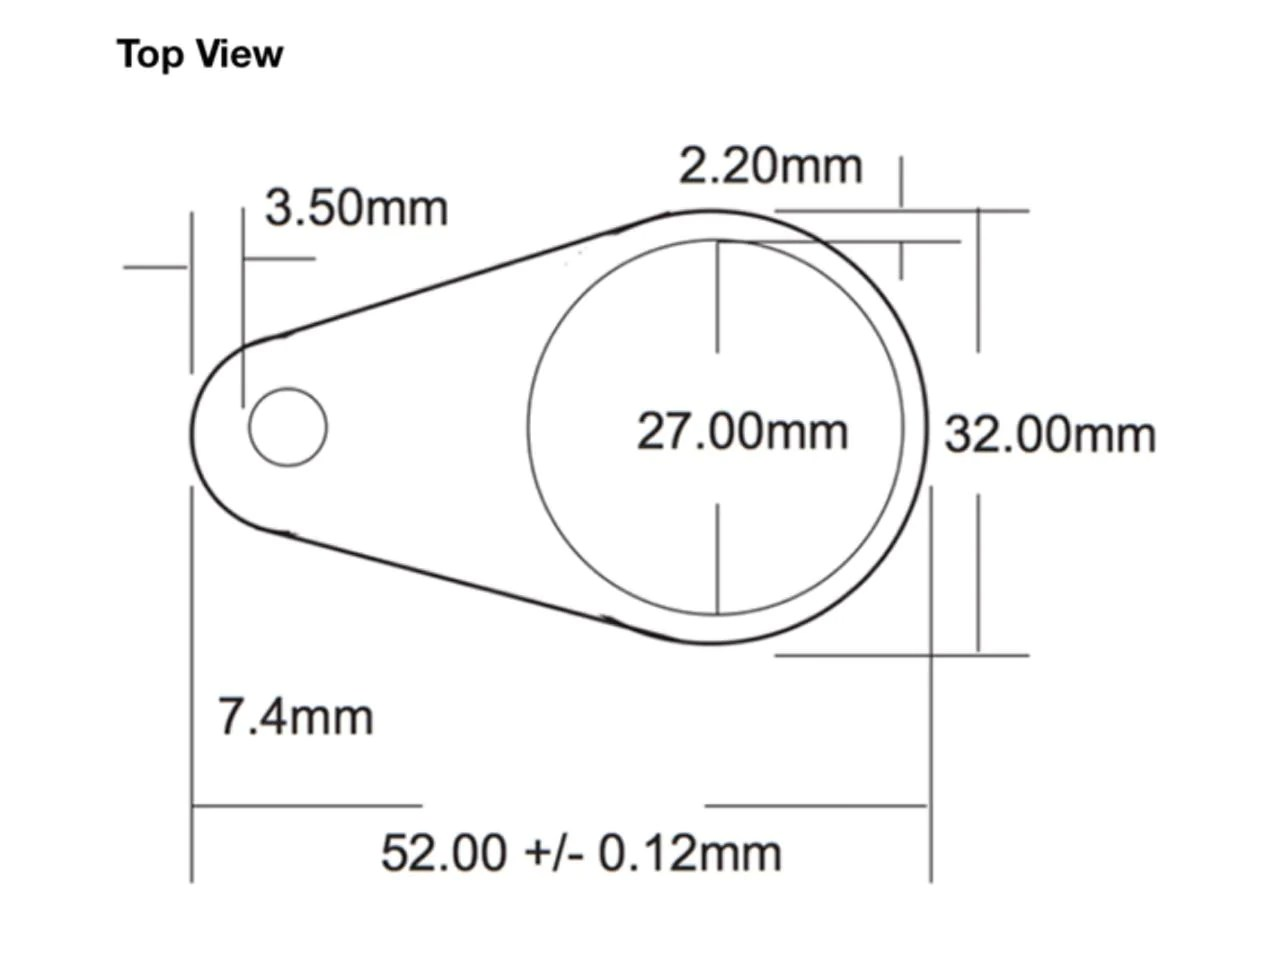 hight resolution of t5577 keyfob schematic top